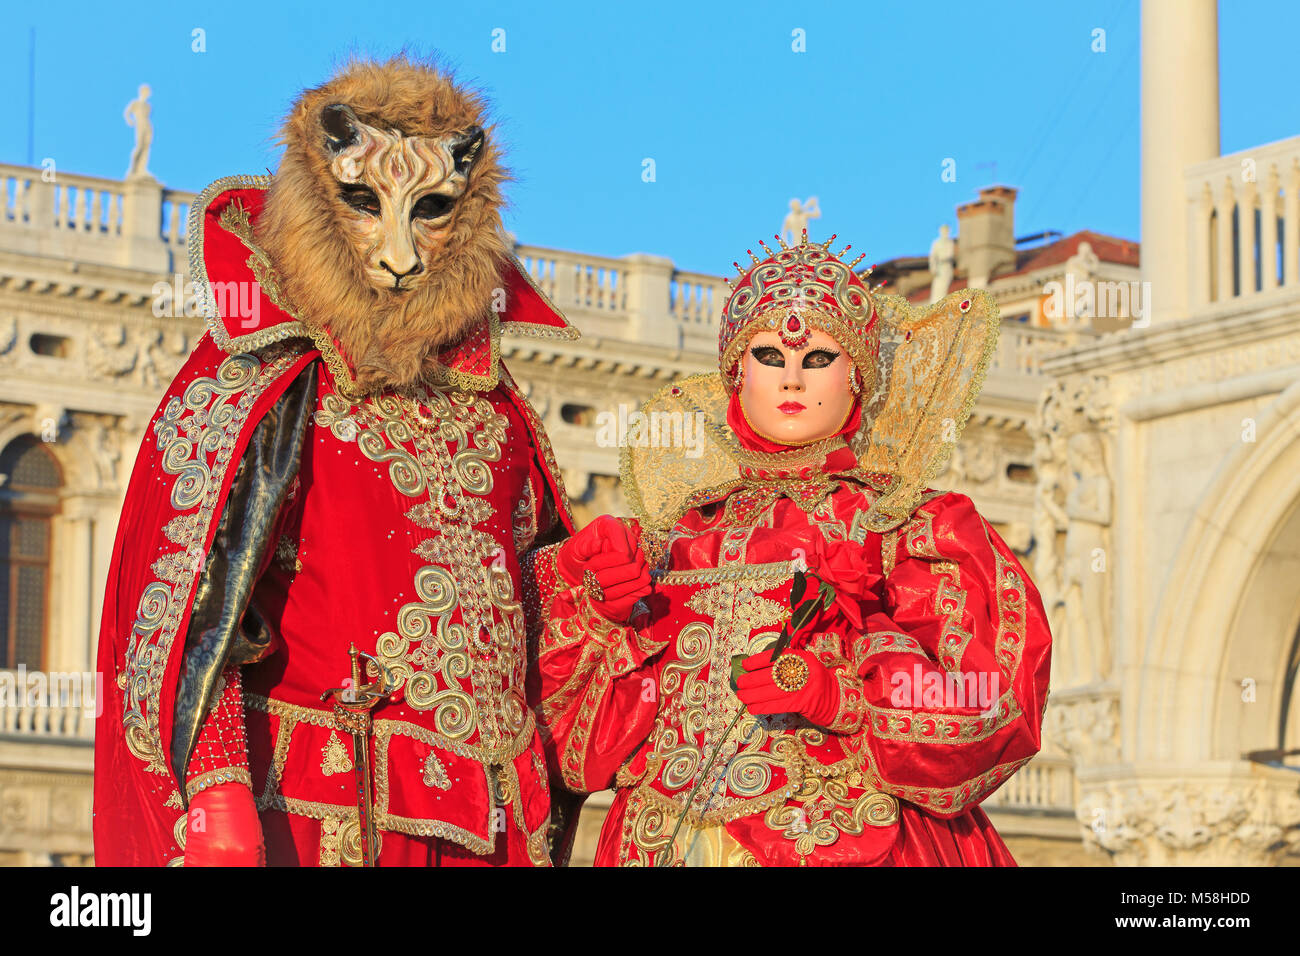 The Beauty and the Beast during the Carnival of Venice (Carnevale di Venezia) in Venice, Italy - Stock Image